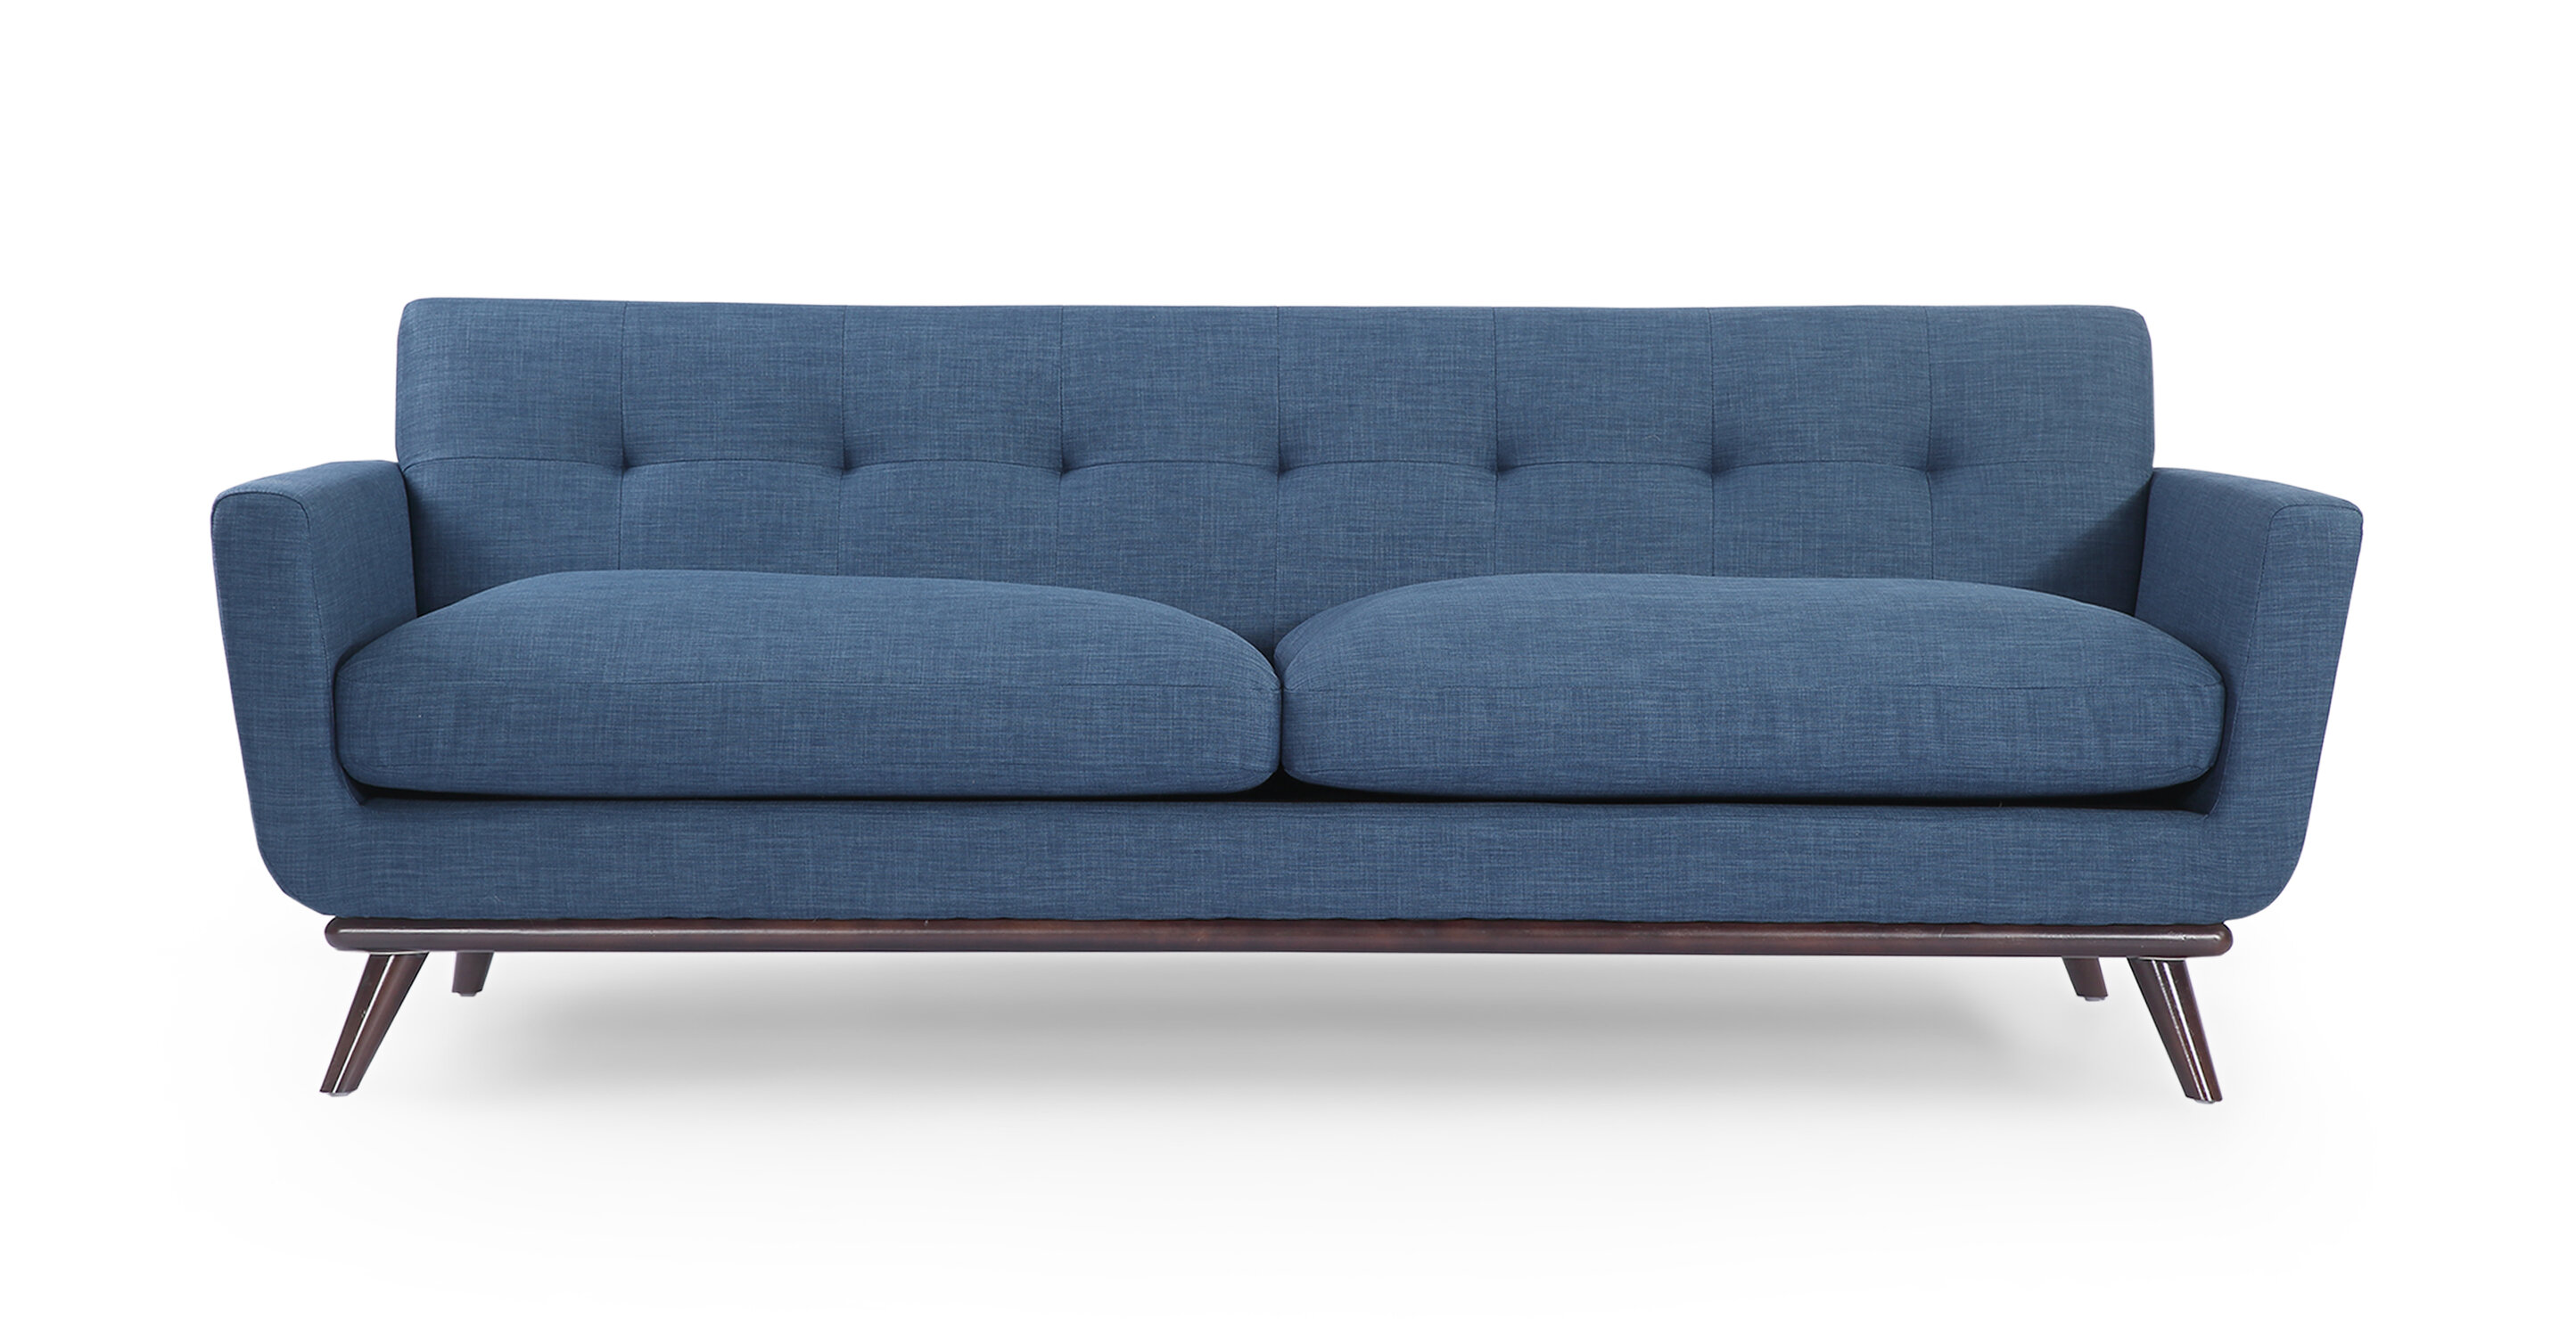 Vintage couch Wood Frame Corrigan Studio Luther Mid Century Modern Vintage Sofa With Wood Legs Reviews Wayfair 123rfcom Corrigan Studio Luther Mid Century Modern Vintage Sofa With Wood